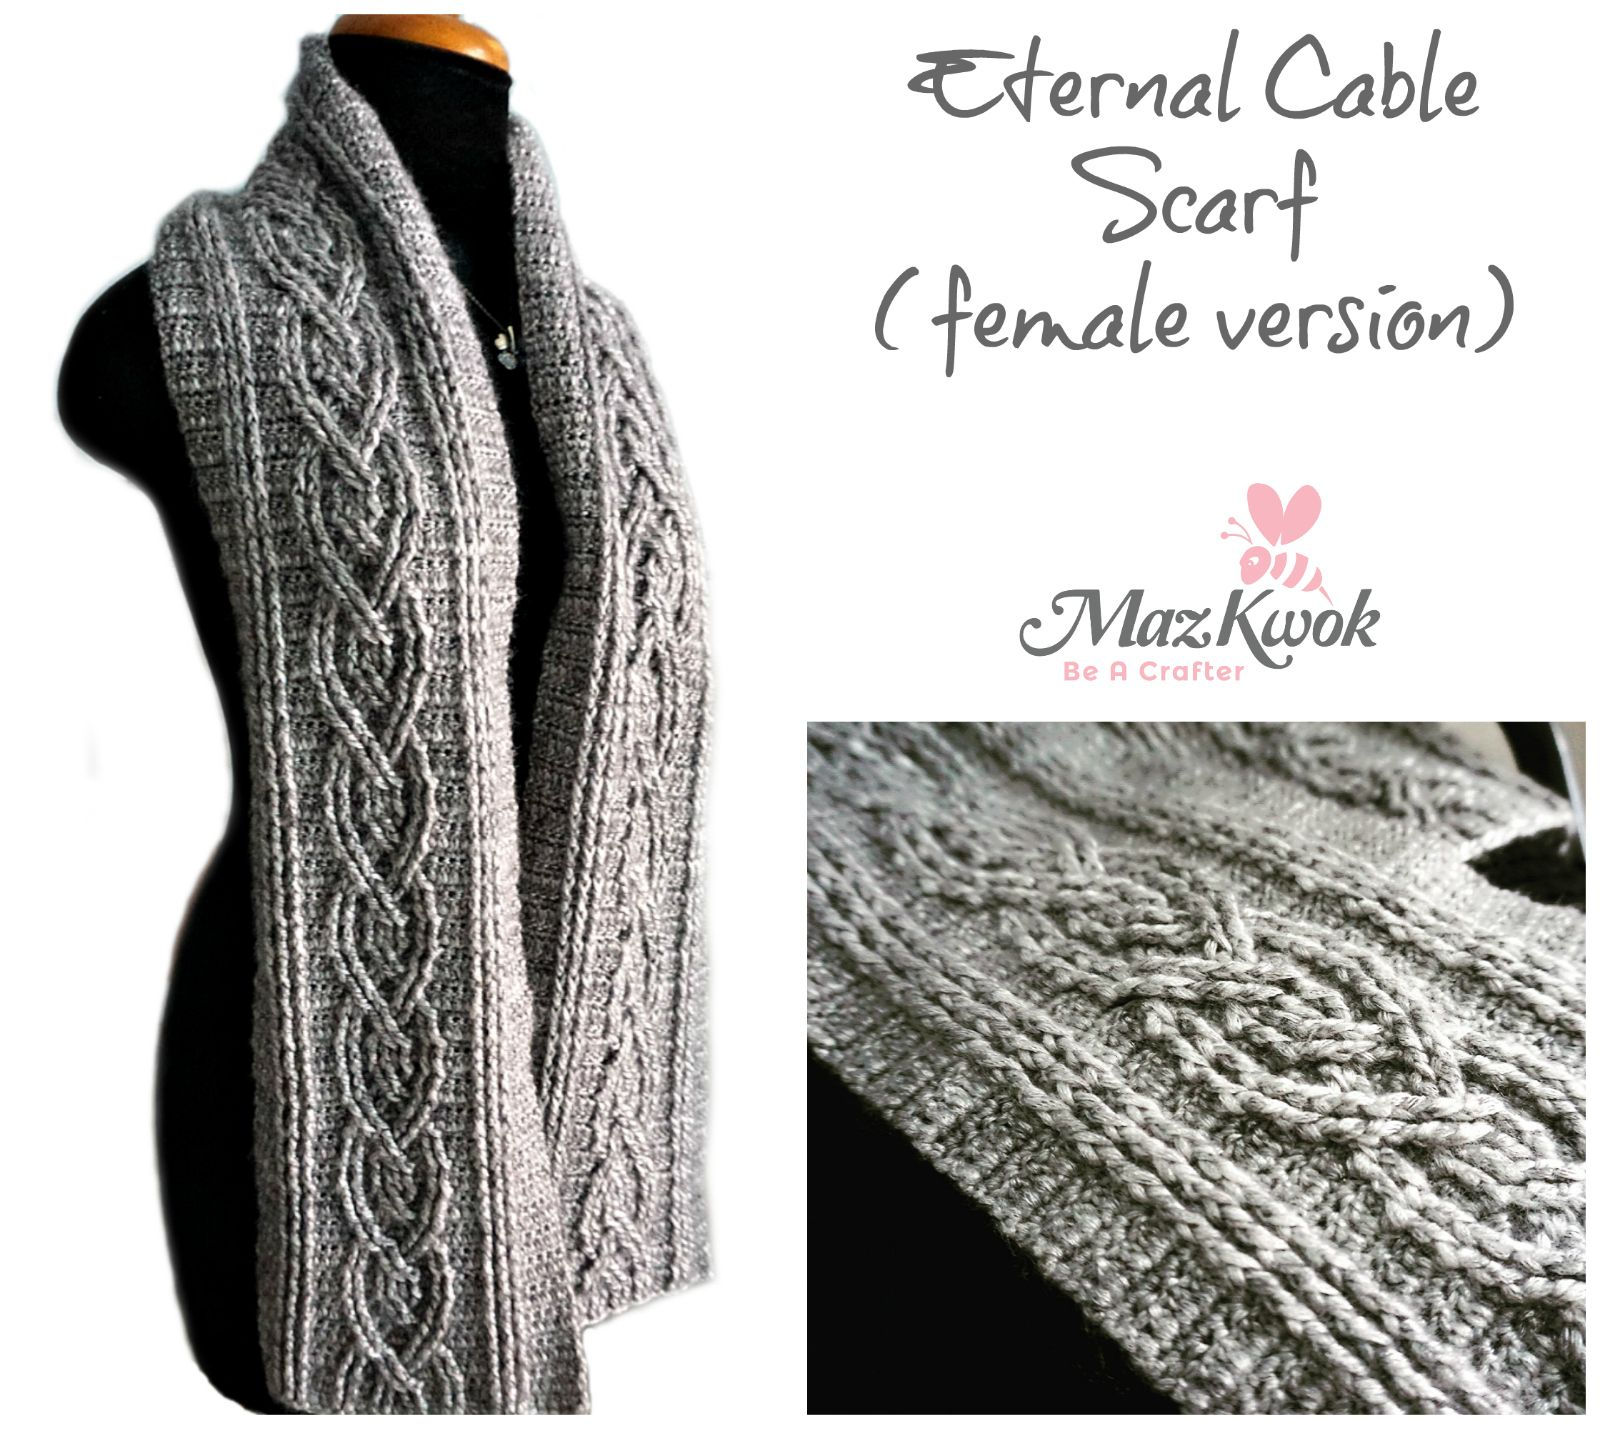 crochet cable scarf | Needle Art: Crochet | Pinterest | Dos agujas